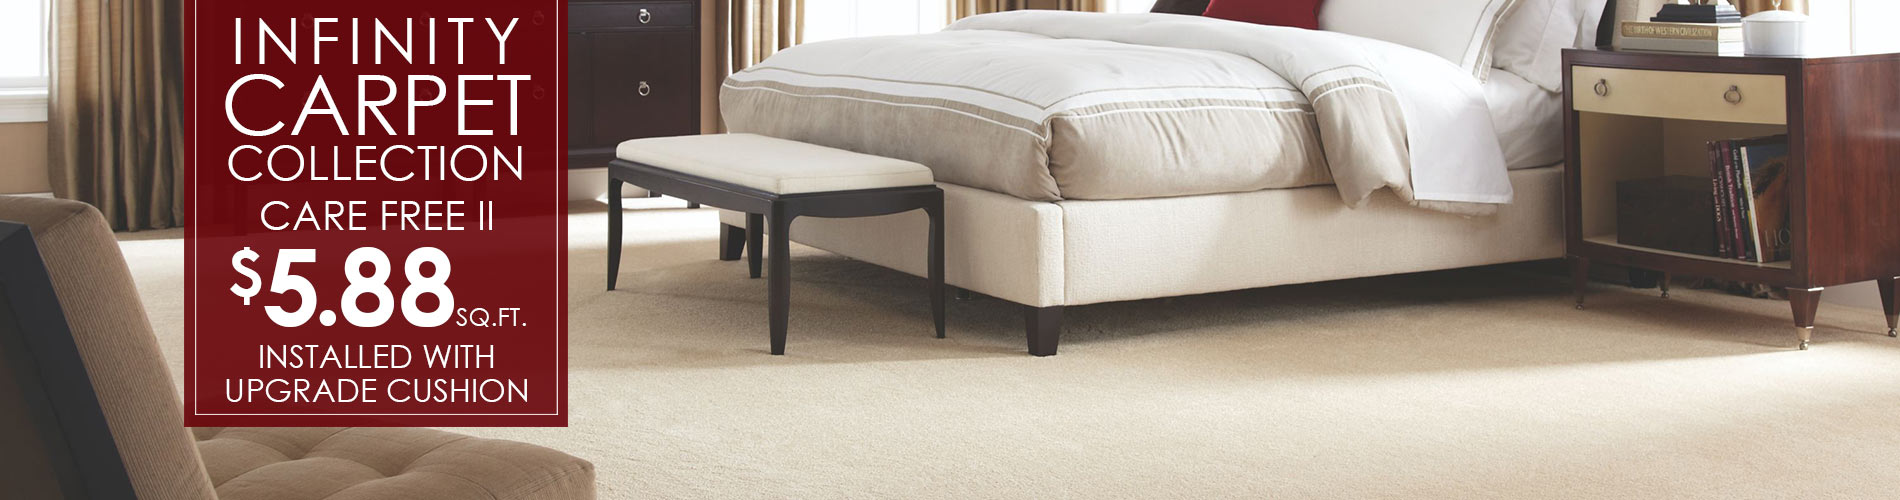 Infinity Collection Care Free II $5.88 sq.ft. Installed with upgraded cushion